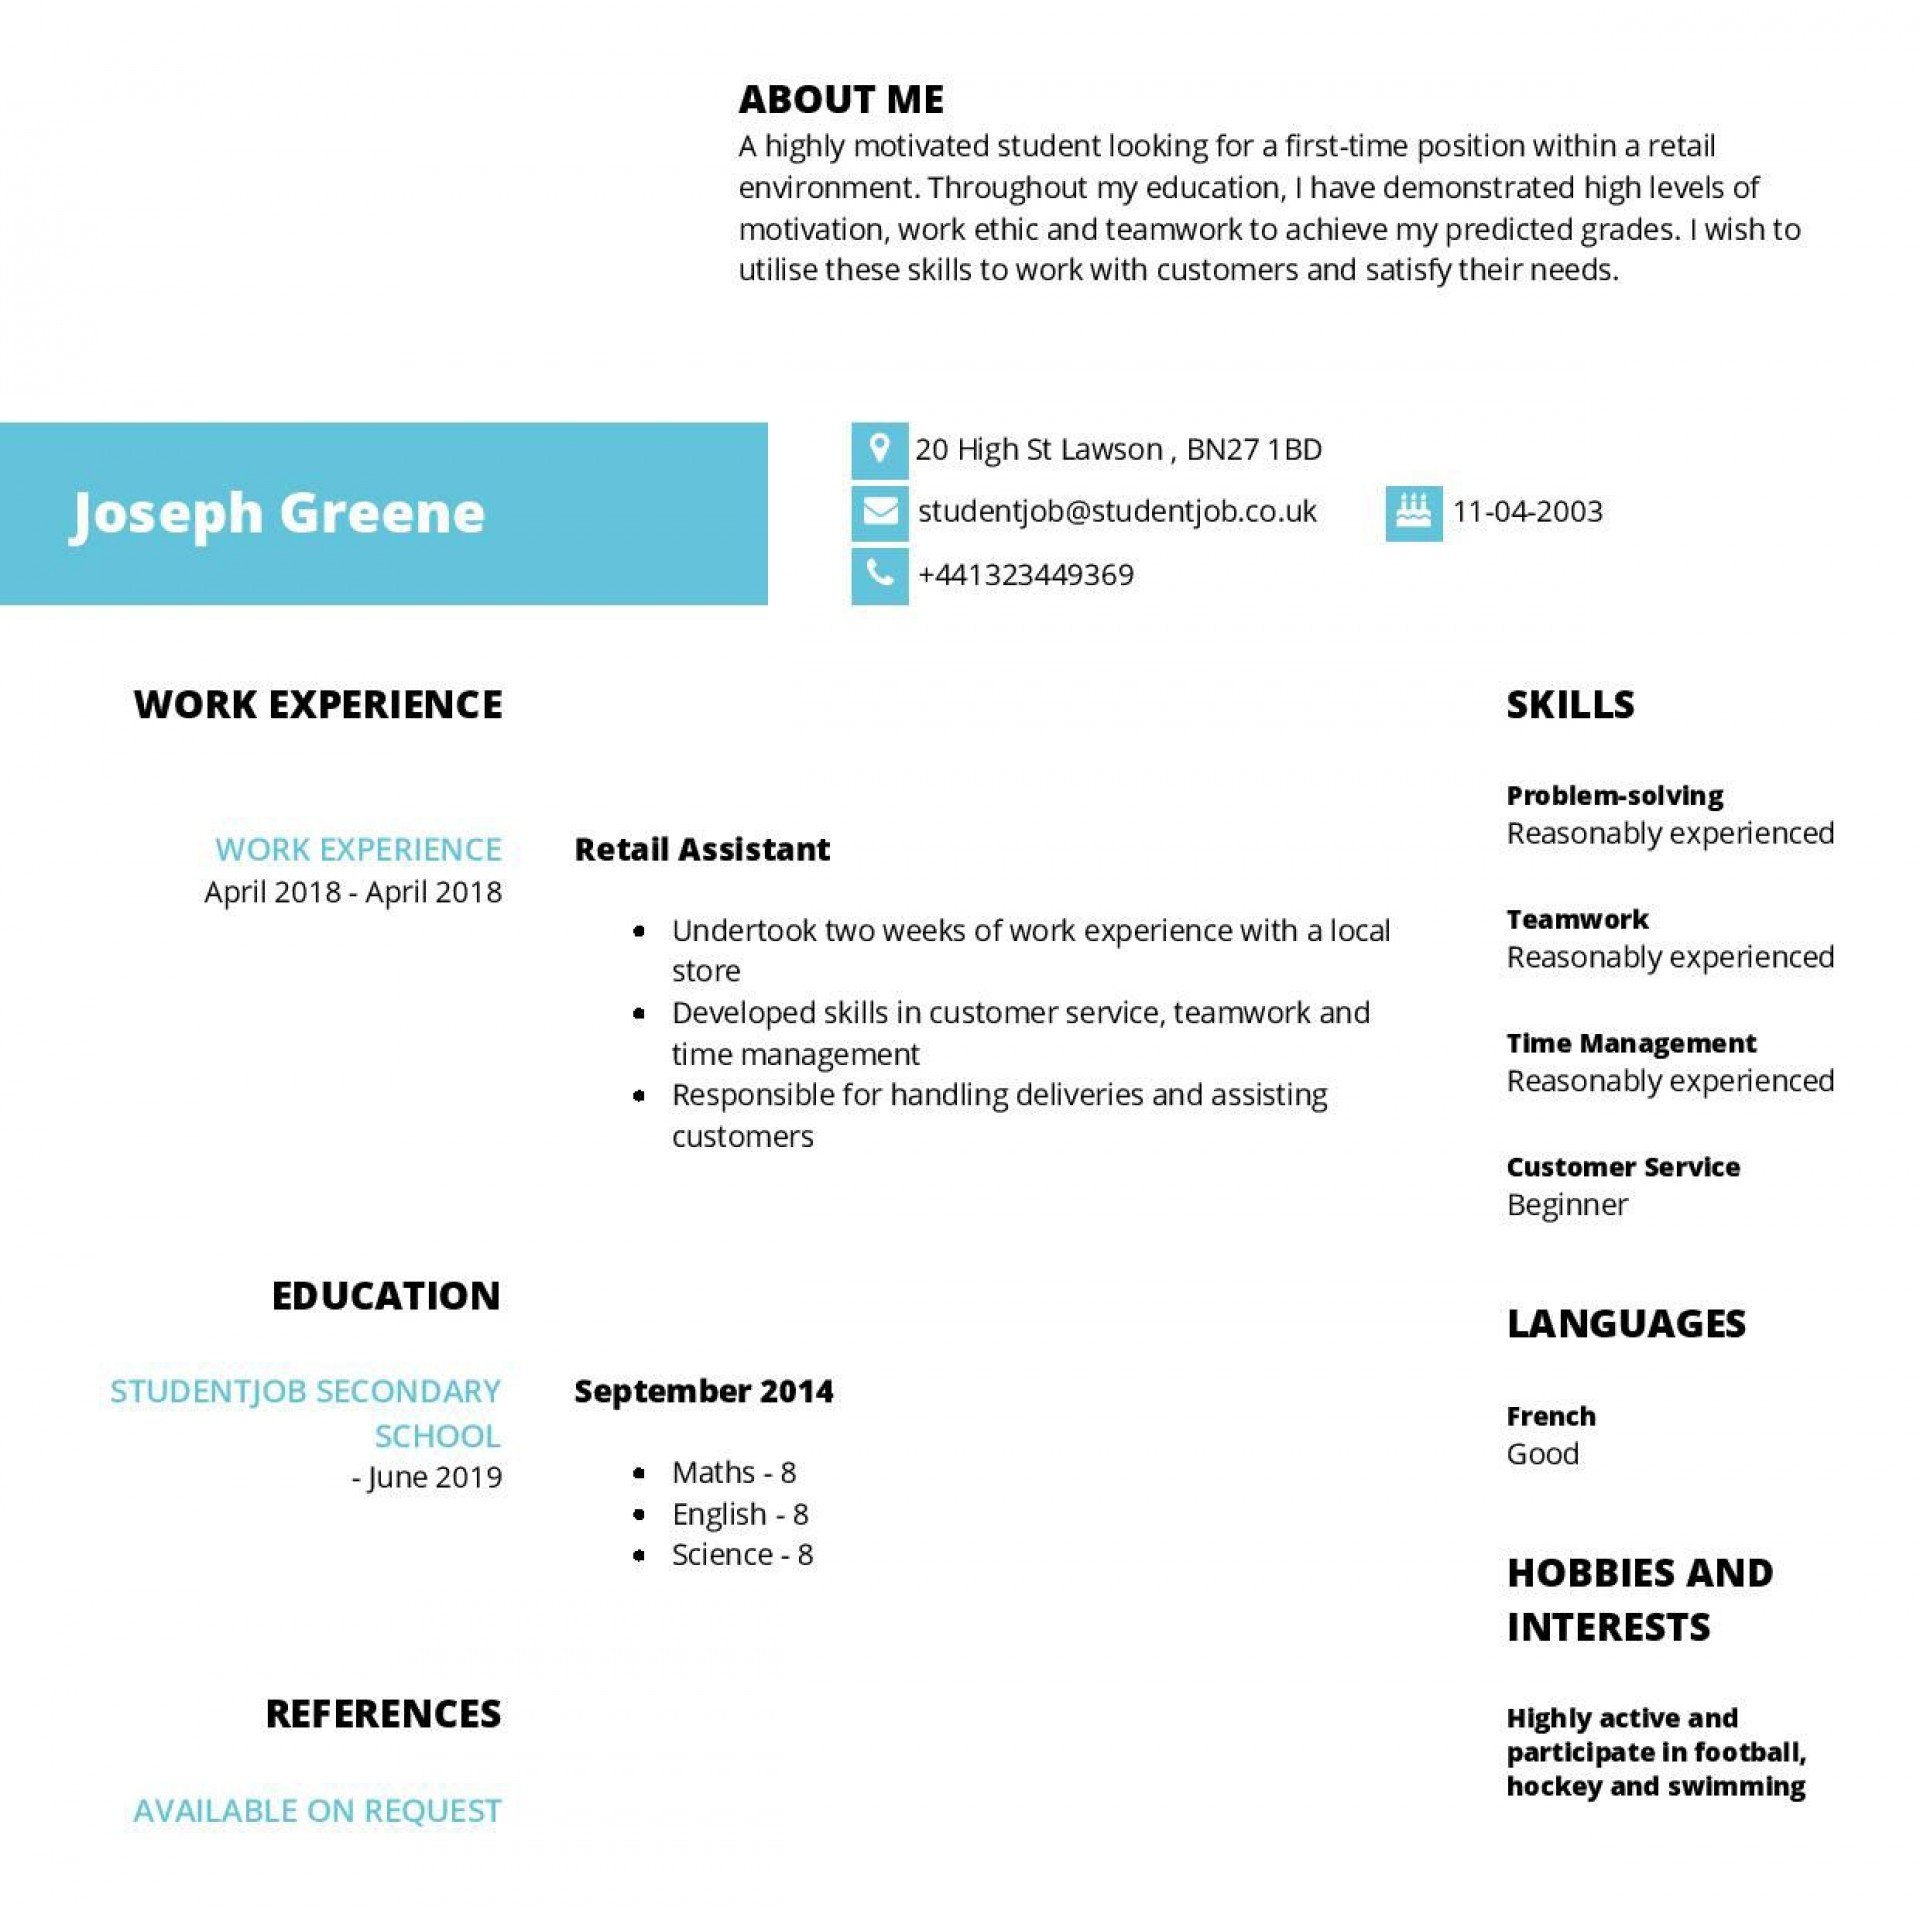 003 Phenomenal Resume Template For First Job Highest Clarity  After College Sample Student Teenager1920